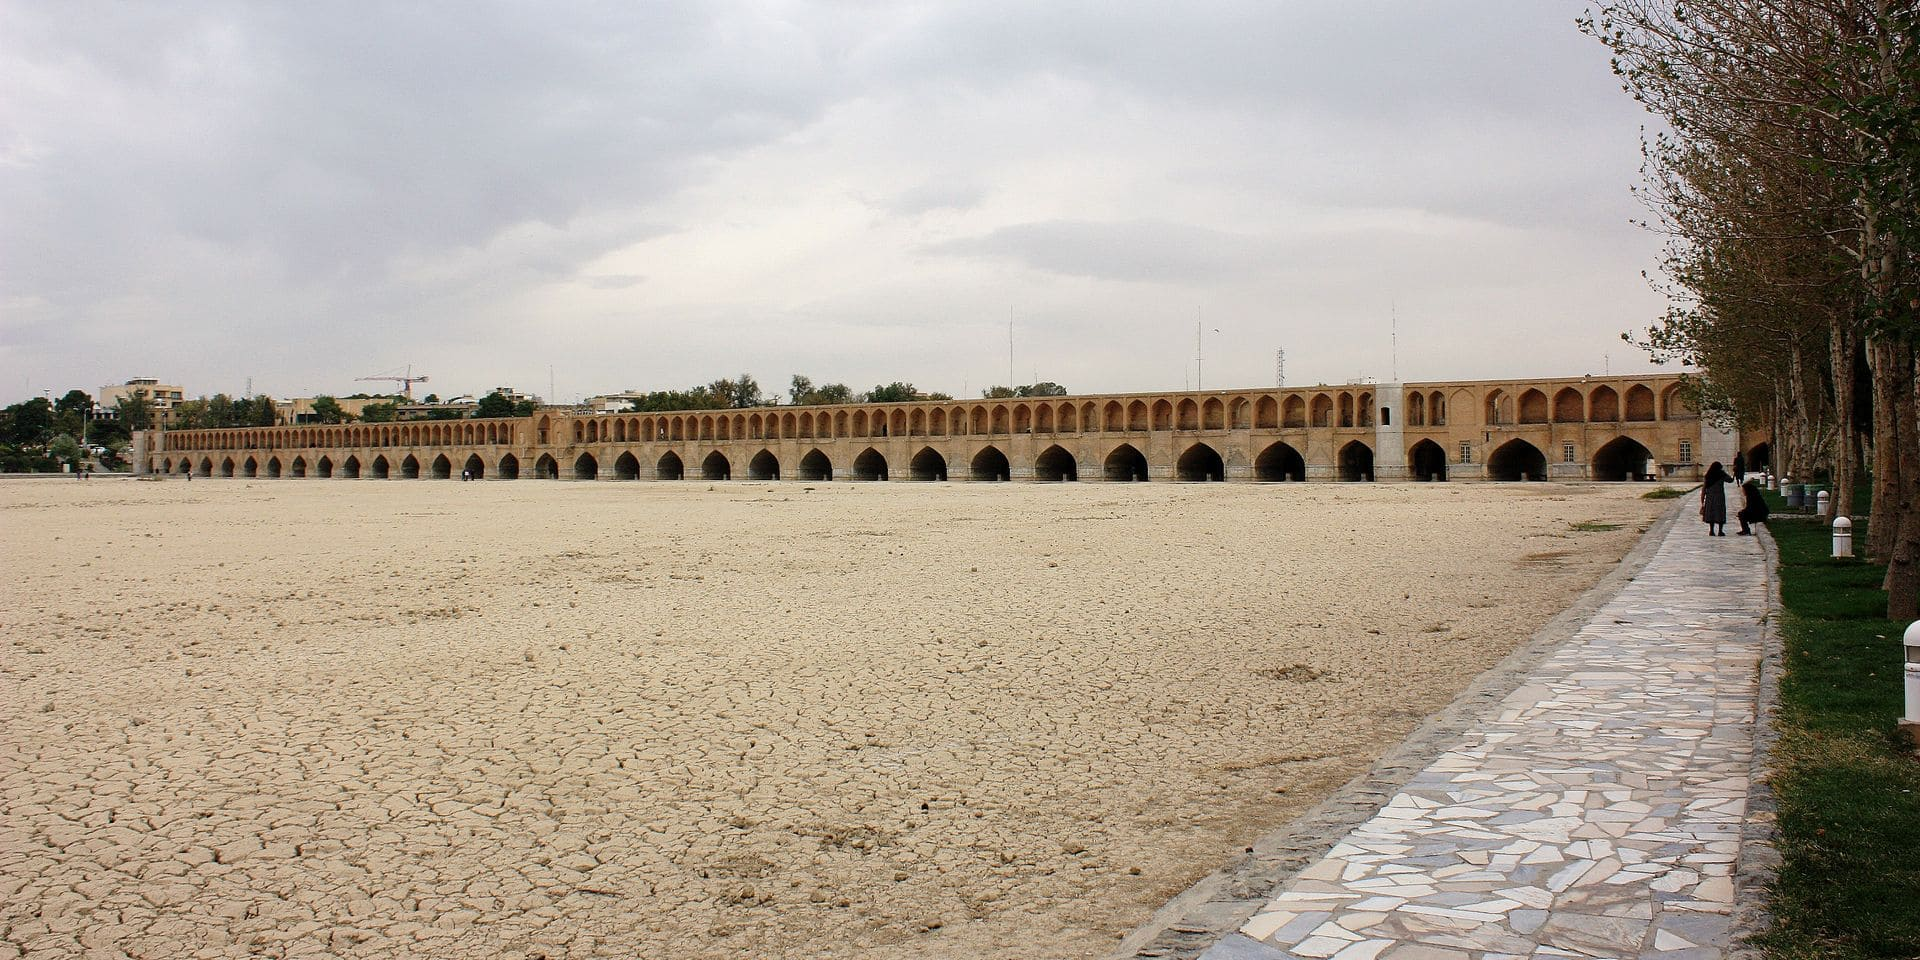 Iran - Isfahan (Esfahan), capital of the province with the Chadschu Bridge in the background. Dry river bed of Zayandeh Rud downstream. The once richest river in central Iran today is mostly dried up due to lack of rain and the diversion of the water in favor of the city of Yazd. Taken on 26.10.2018. Photo: Rolf Zimmermann   usage worldwide